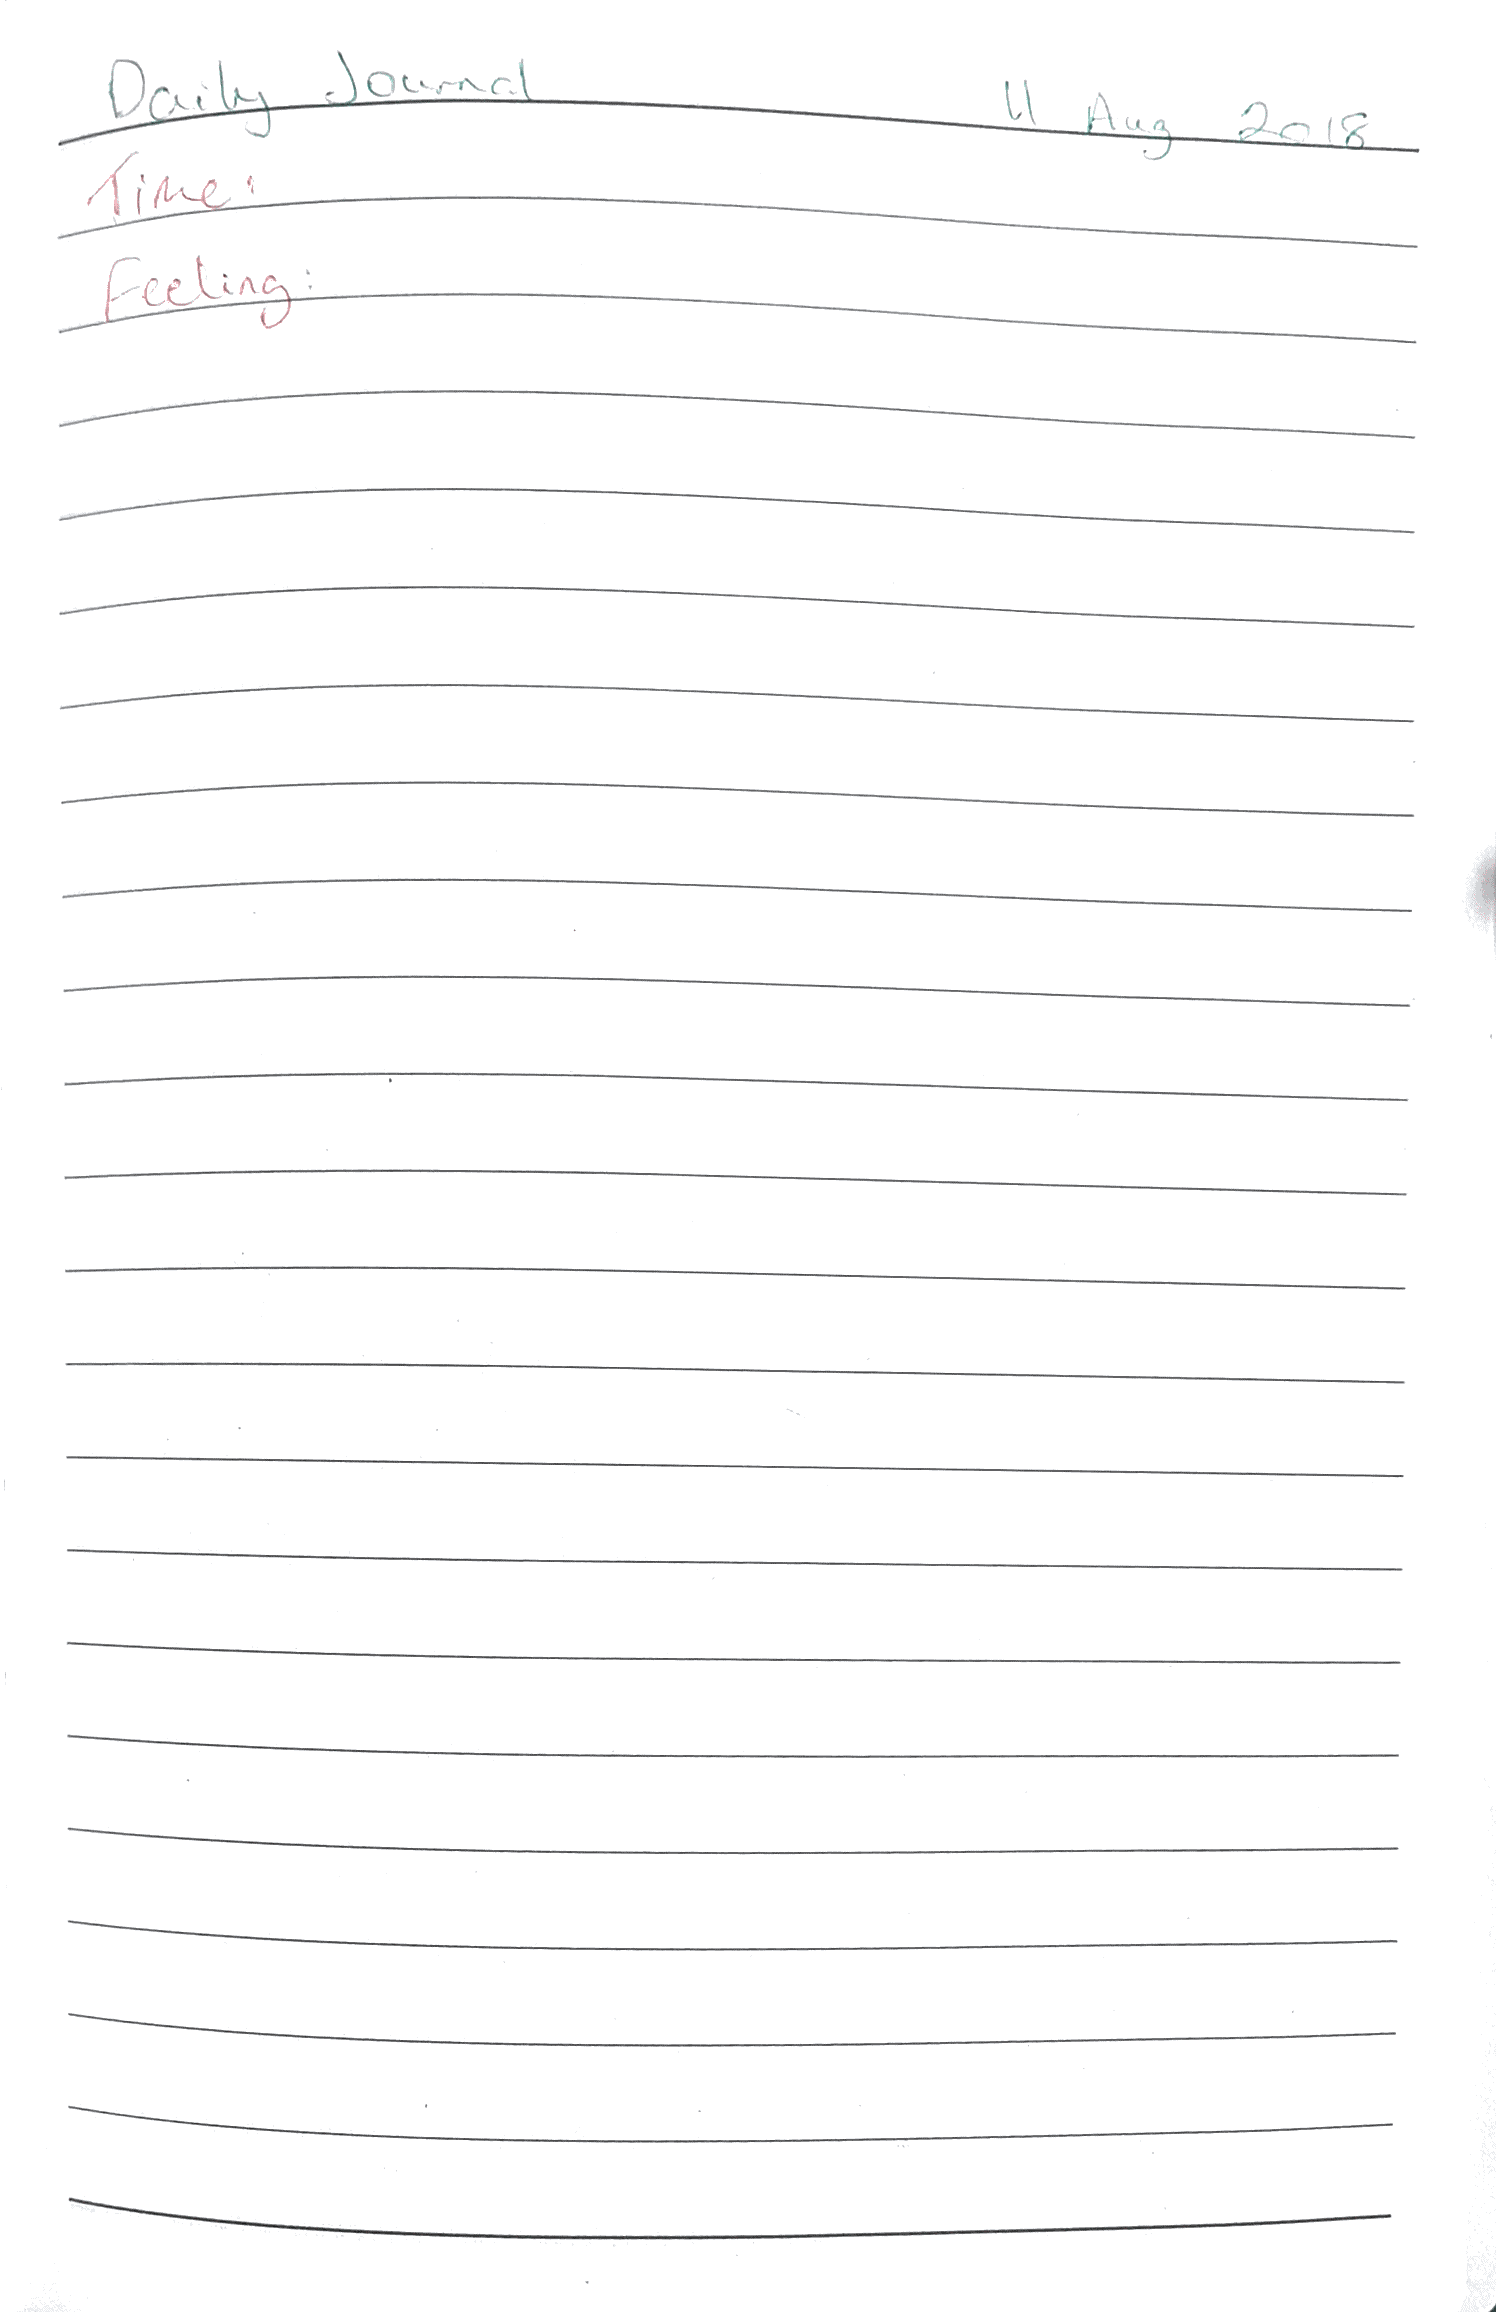 journal template.png